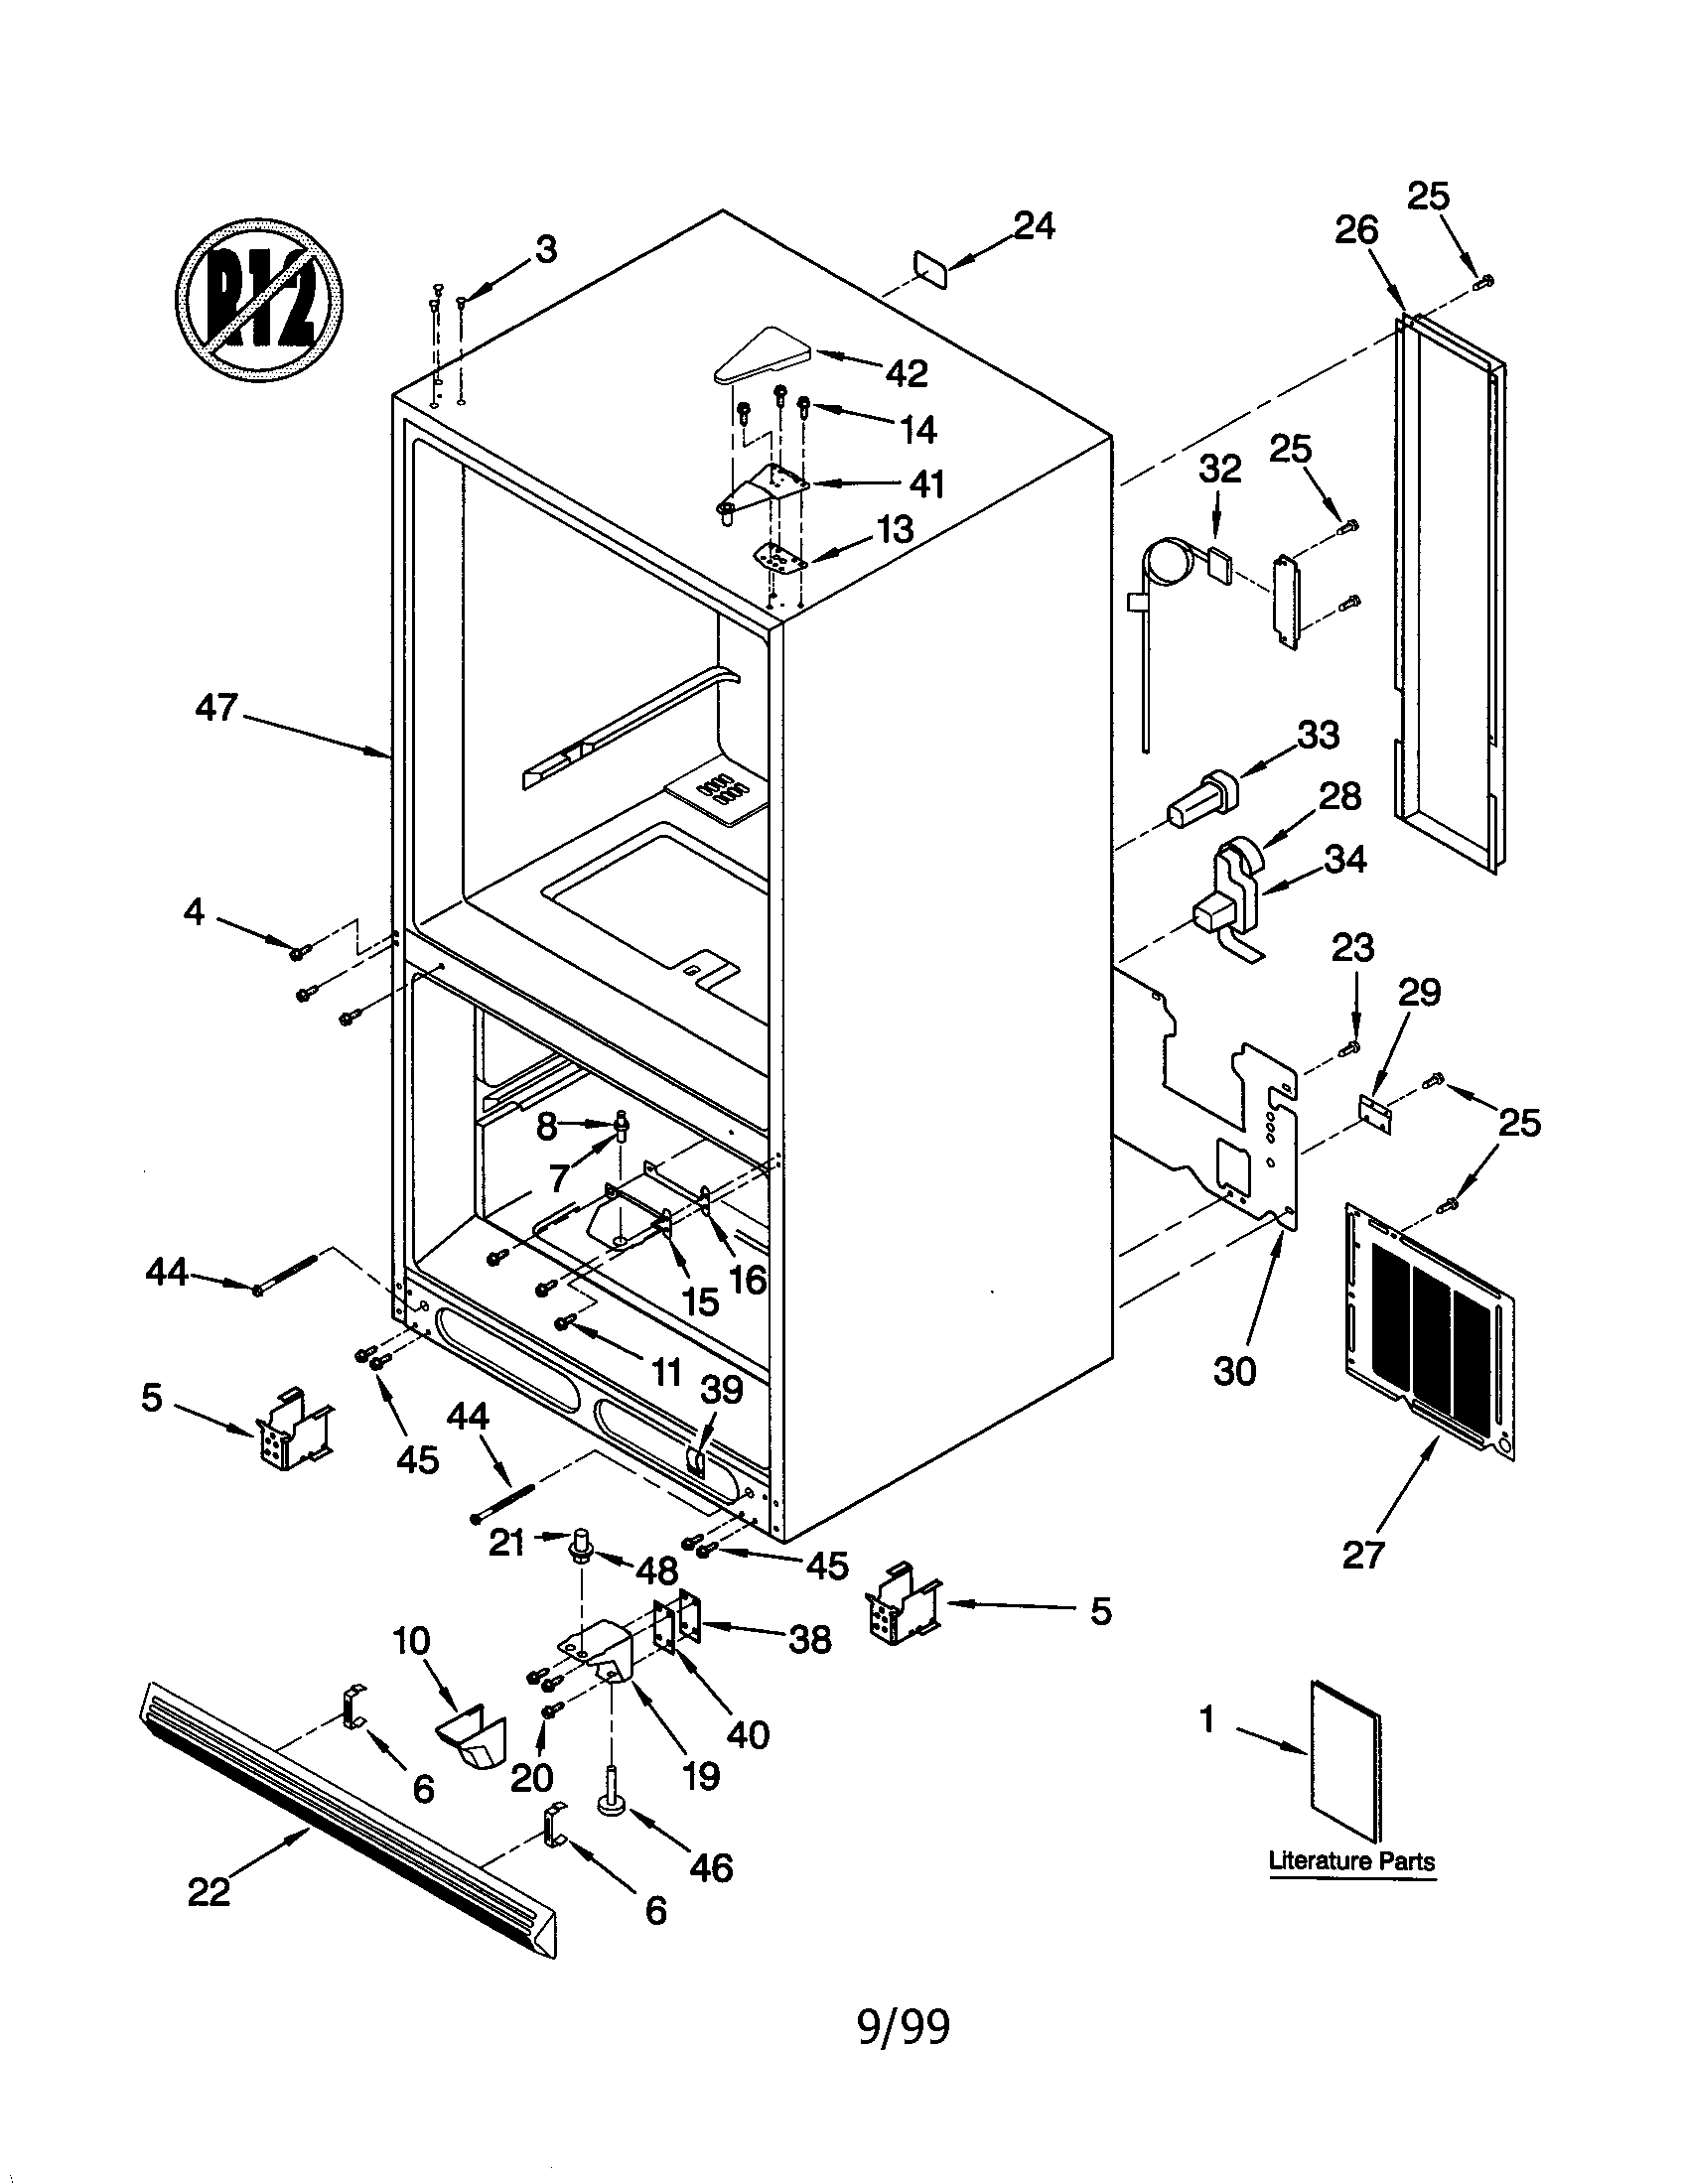 KitchenAid KBRS22KGWH1 cabinet diagram